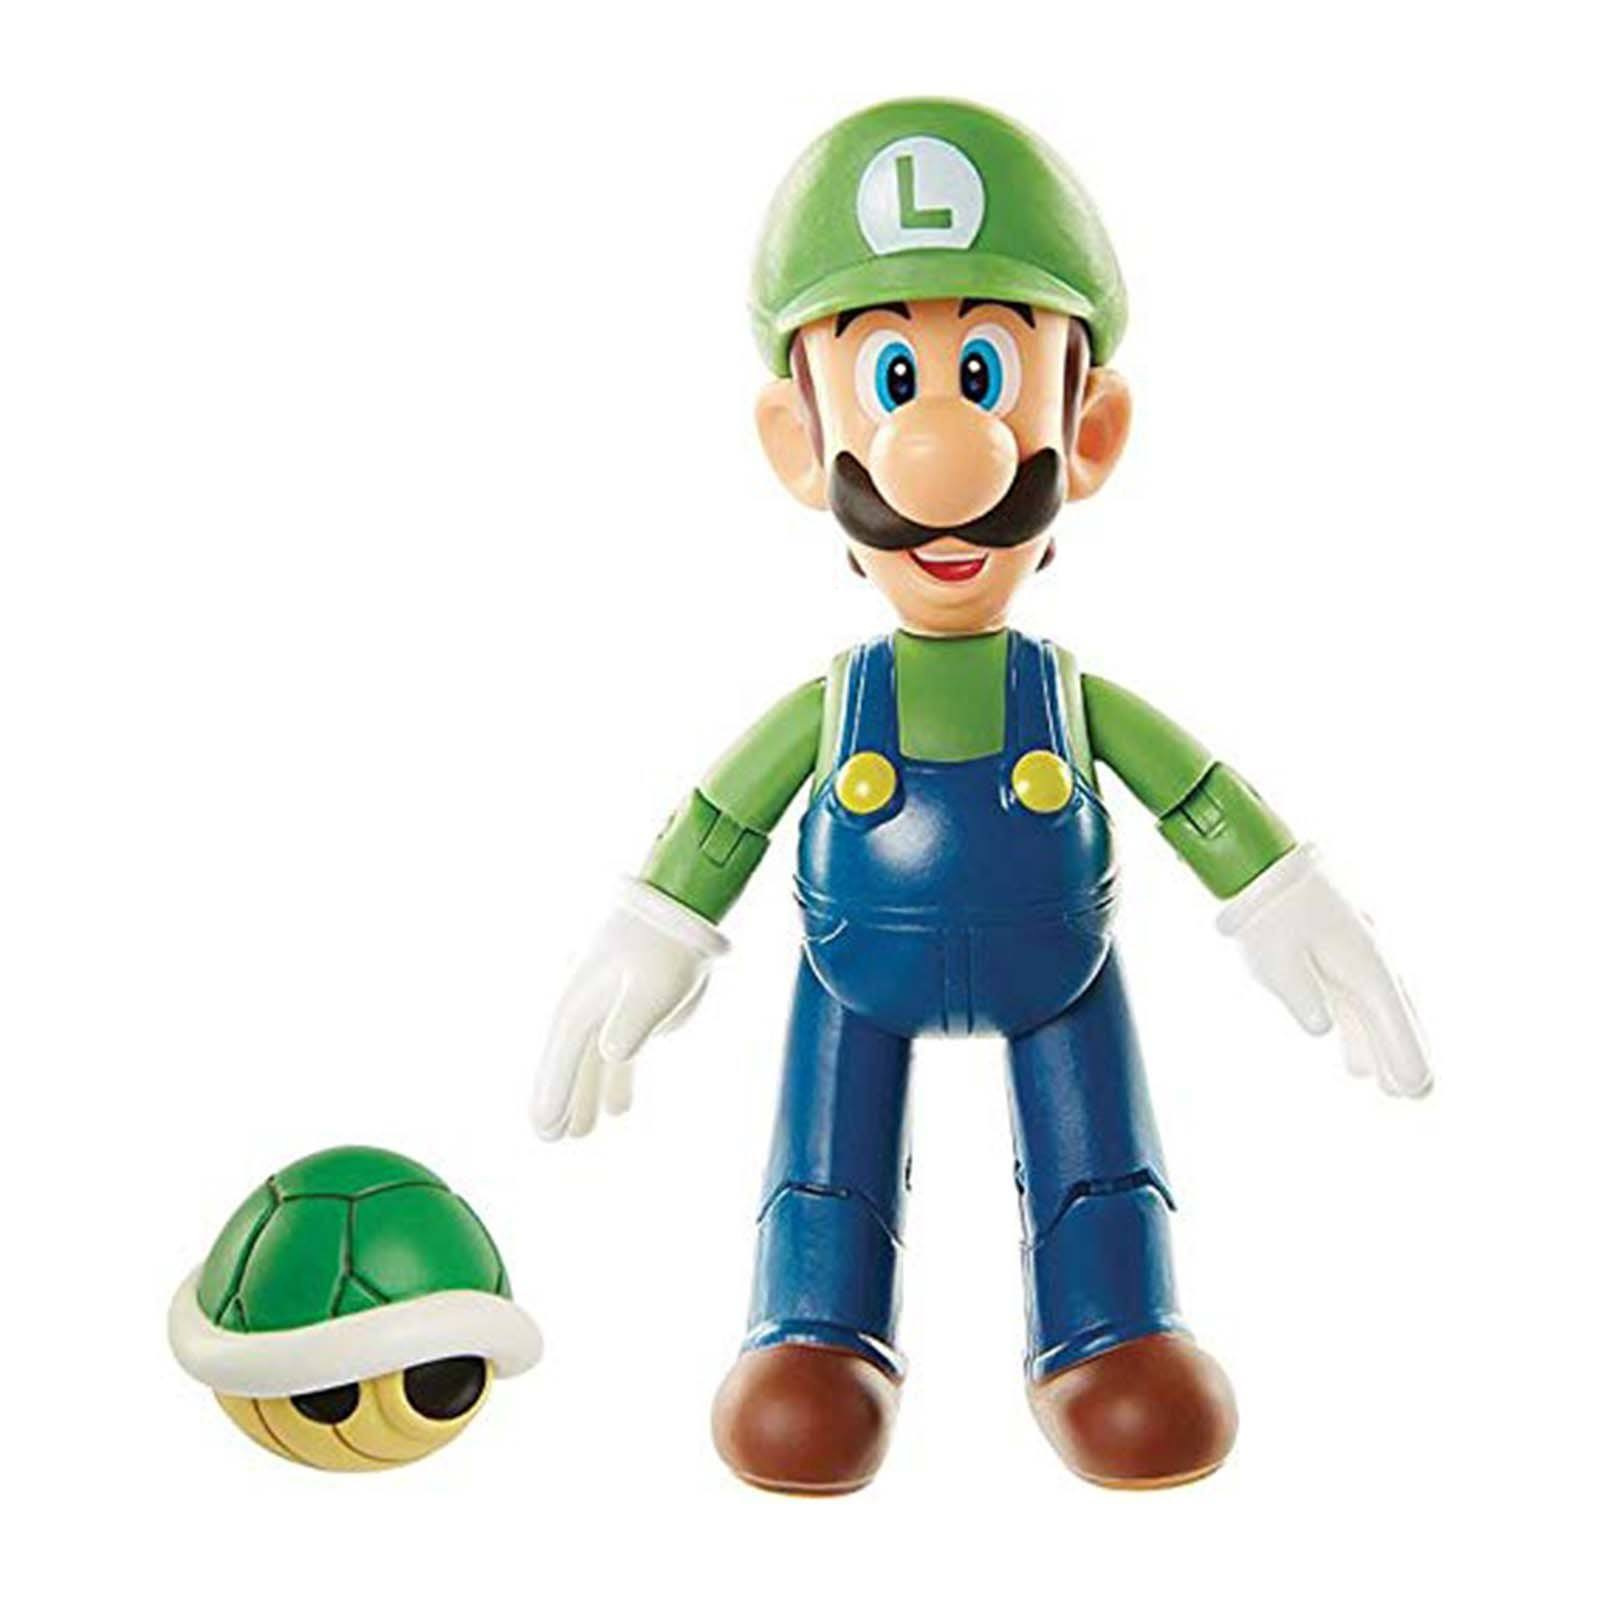 World of Nintendo Action Figure - Luigi With Koopa Shell, 4""